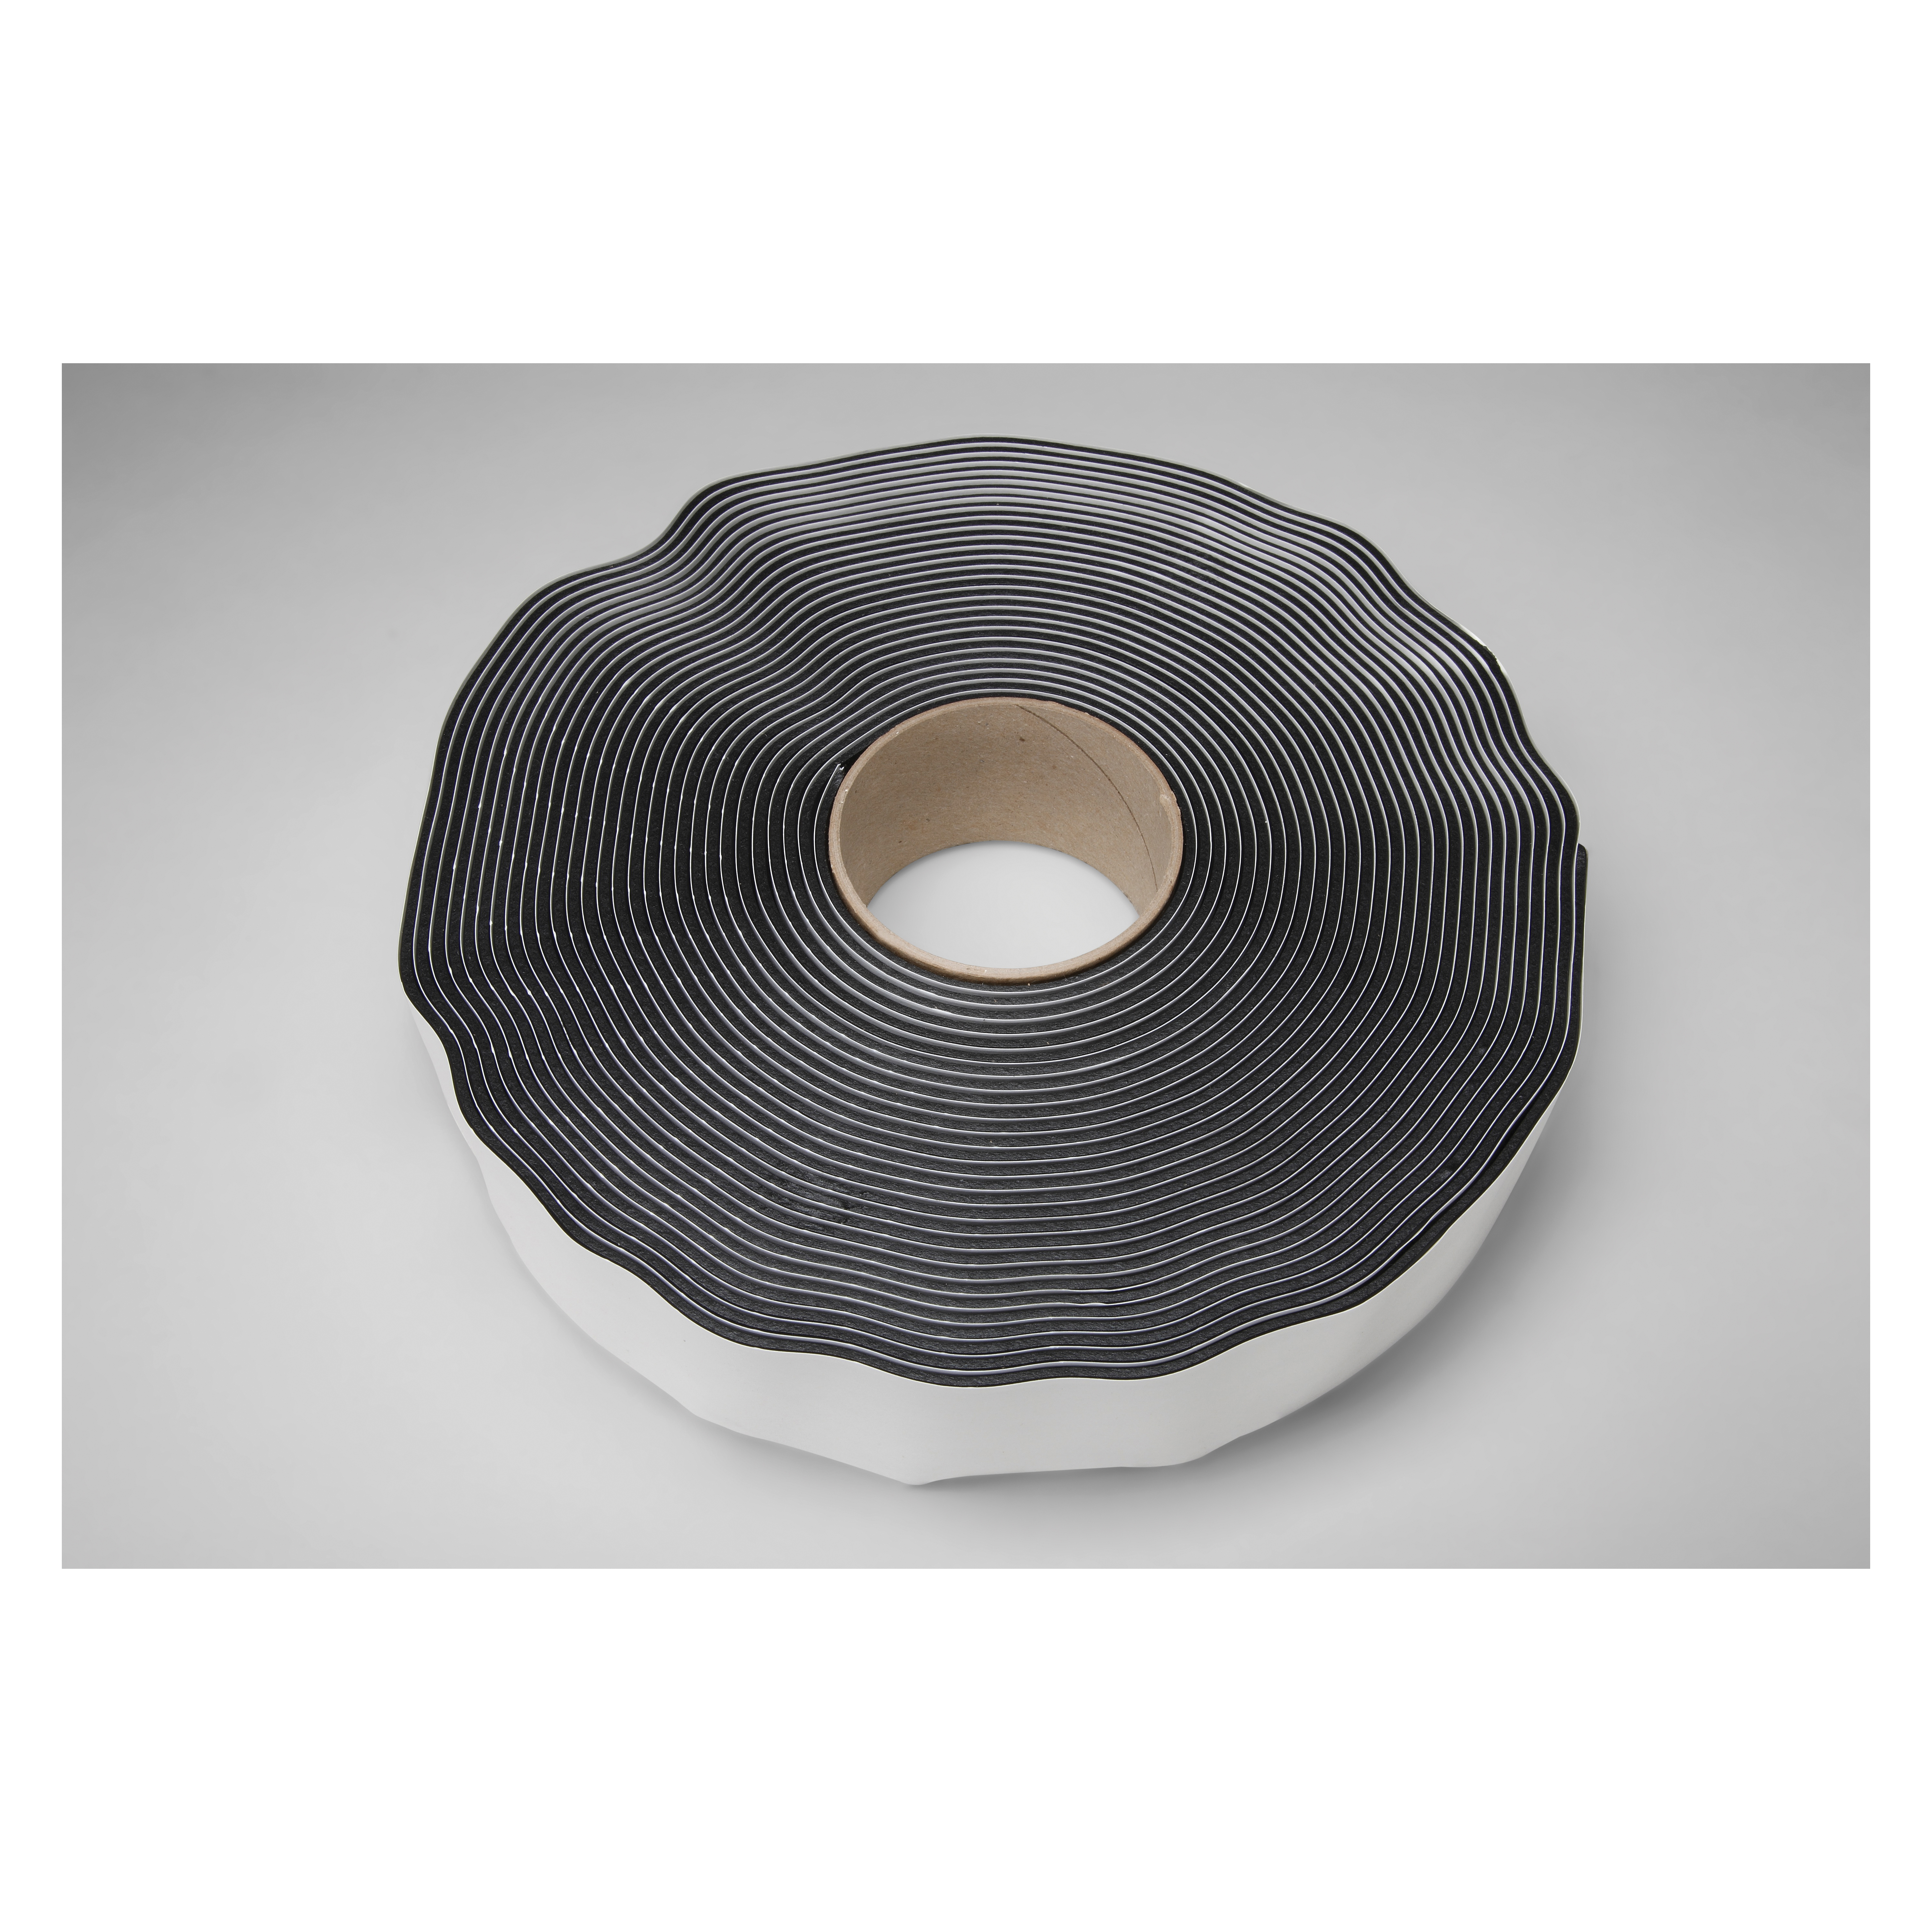 3M™ Weatherban™ 021200-83508 Ribbon Sealant Tape, 50 ft L x 2 in W, 1/8 in THK, Butyl Adhesive, Black